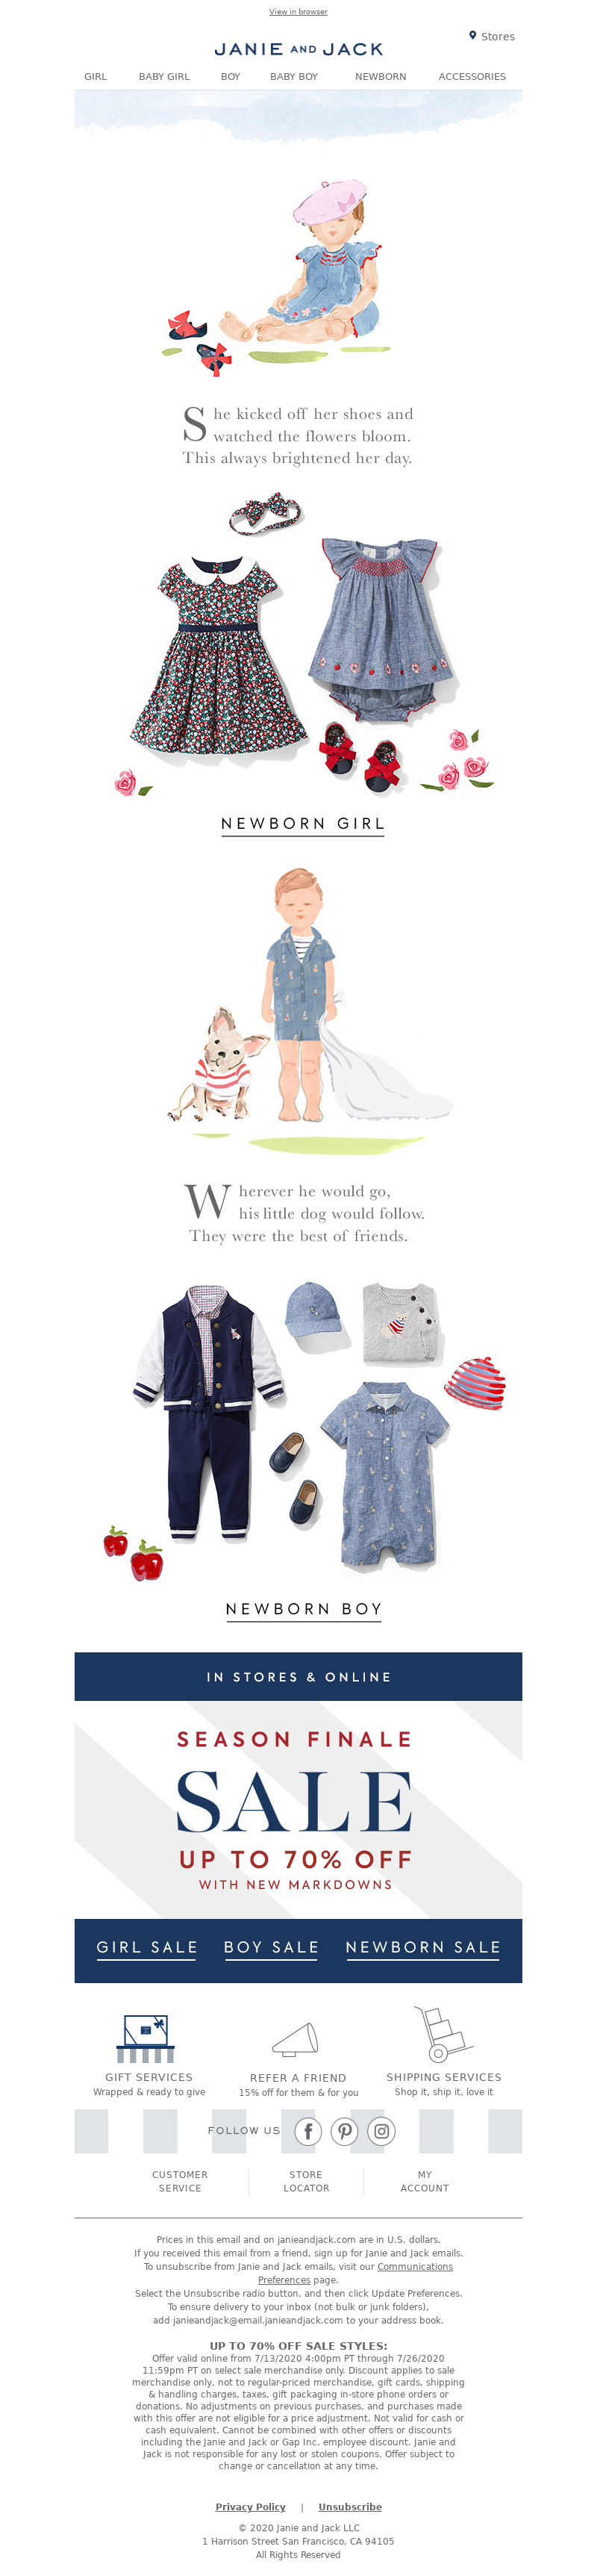 Janie and Jack - A short story: new collection for baby